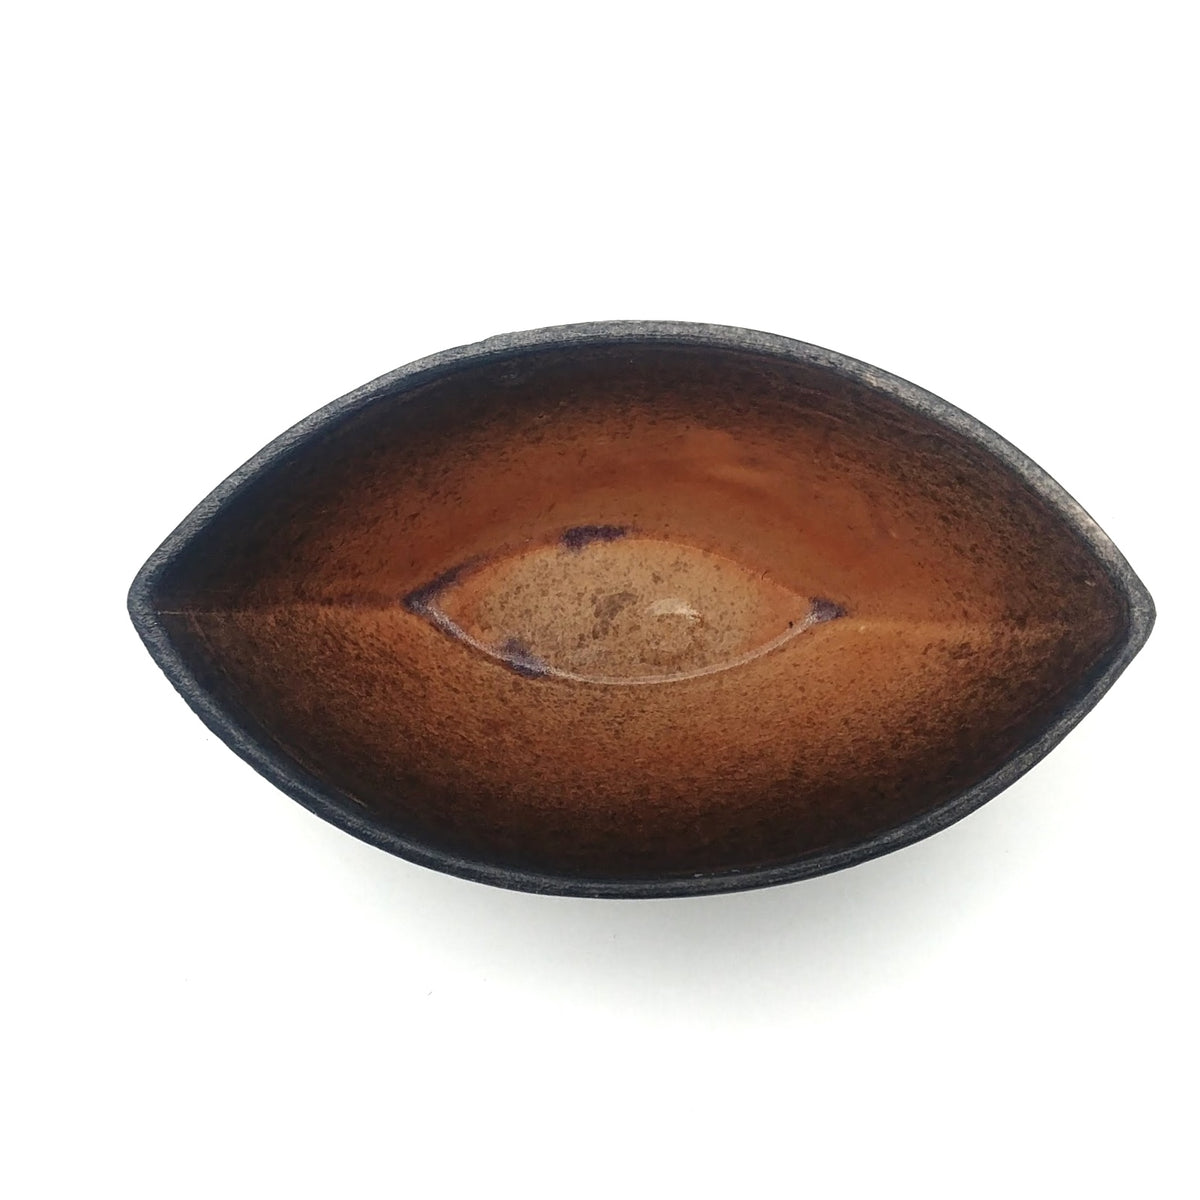 Kaolin-gudnyhaf-boat. Color orange on the inside and black on the outside.